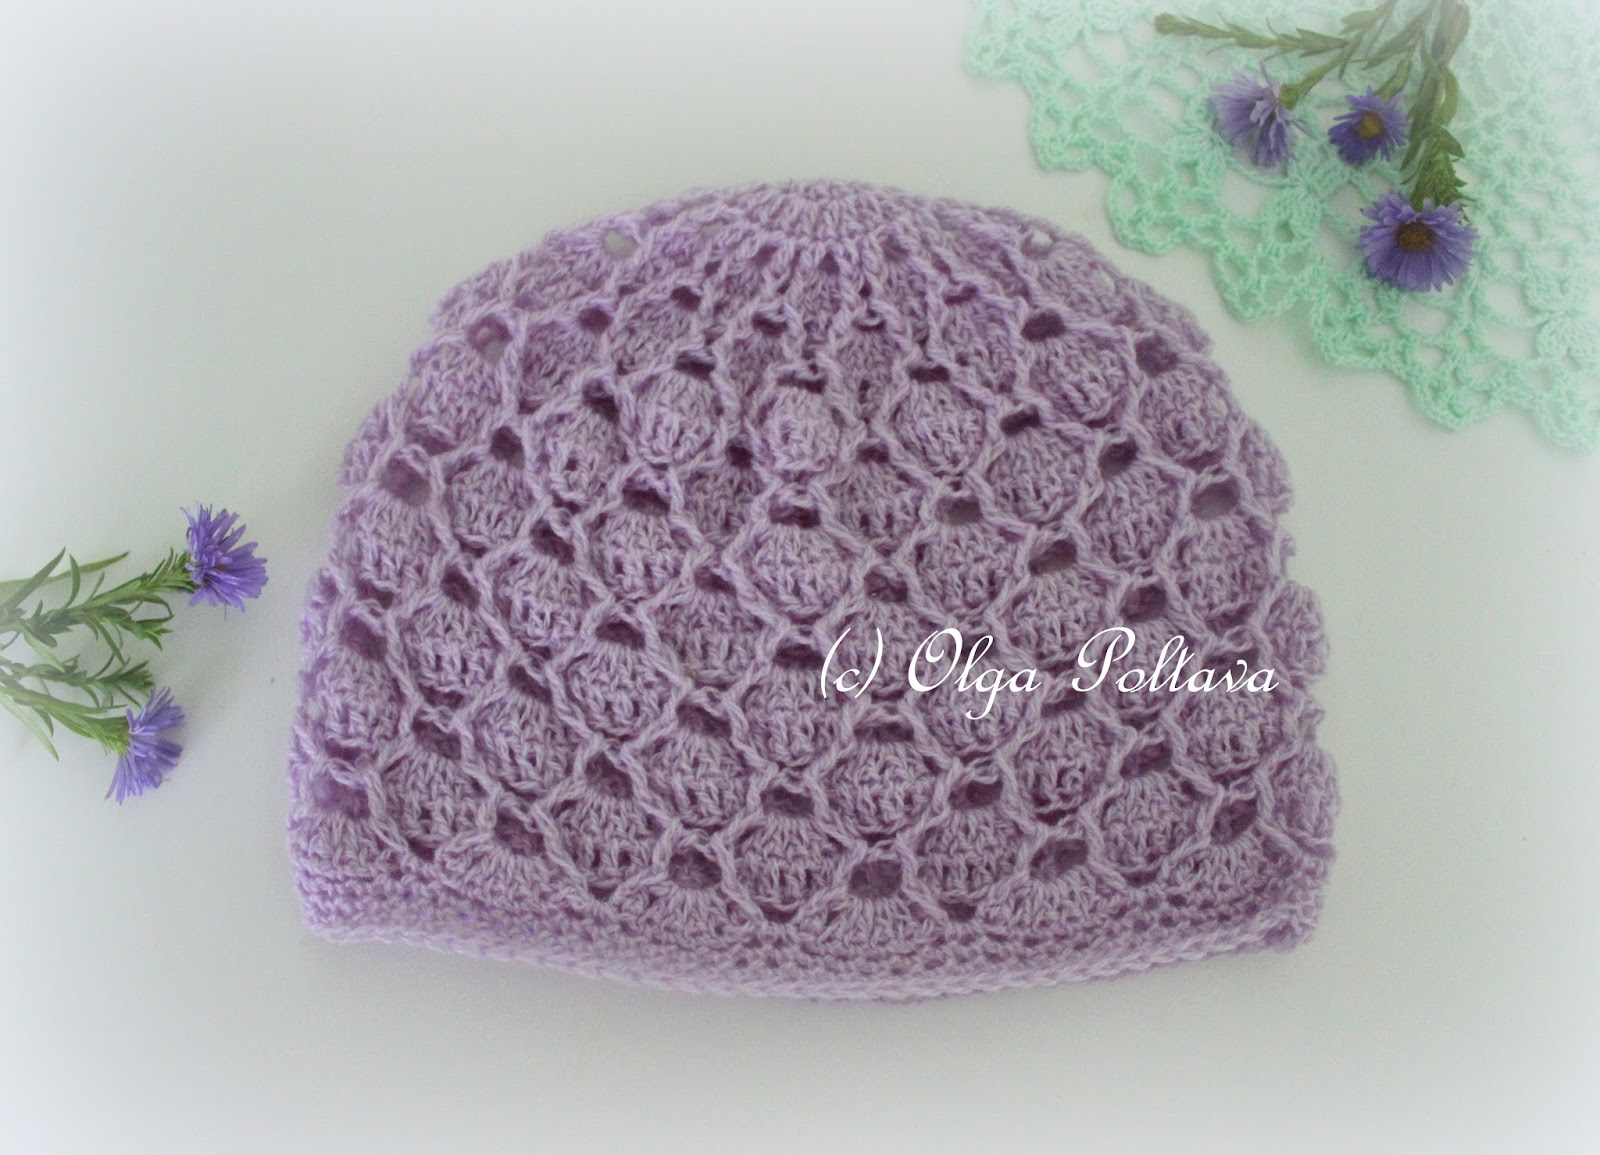 Crocheting Lace Patterns : Lacy Crochet: Delicate Lace Crochet Baby Hat, Free Pattern from ...